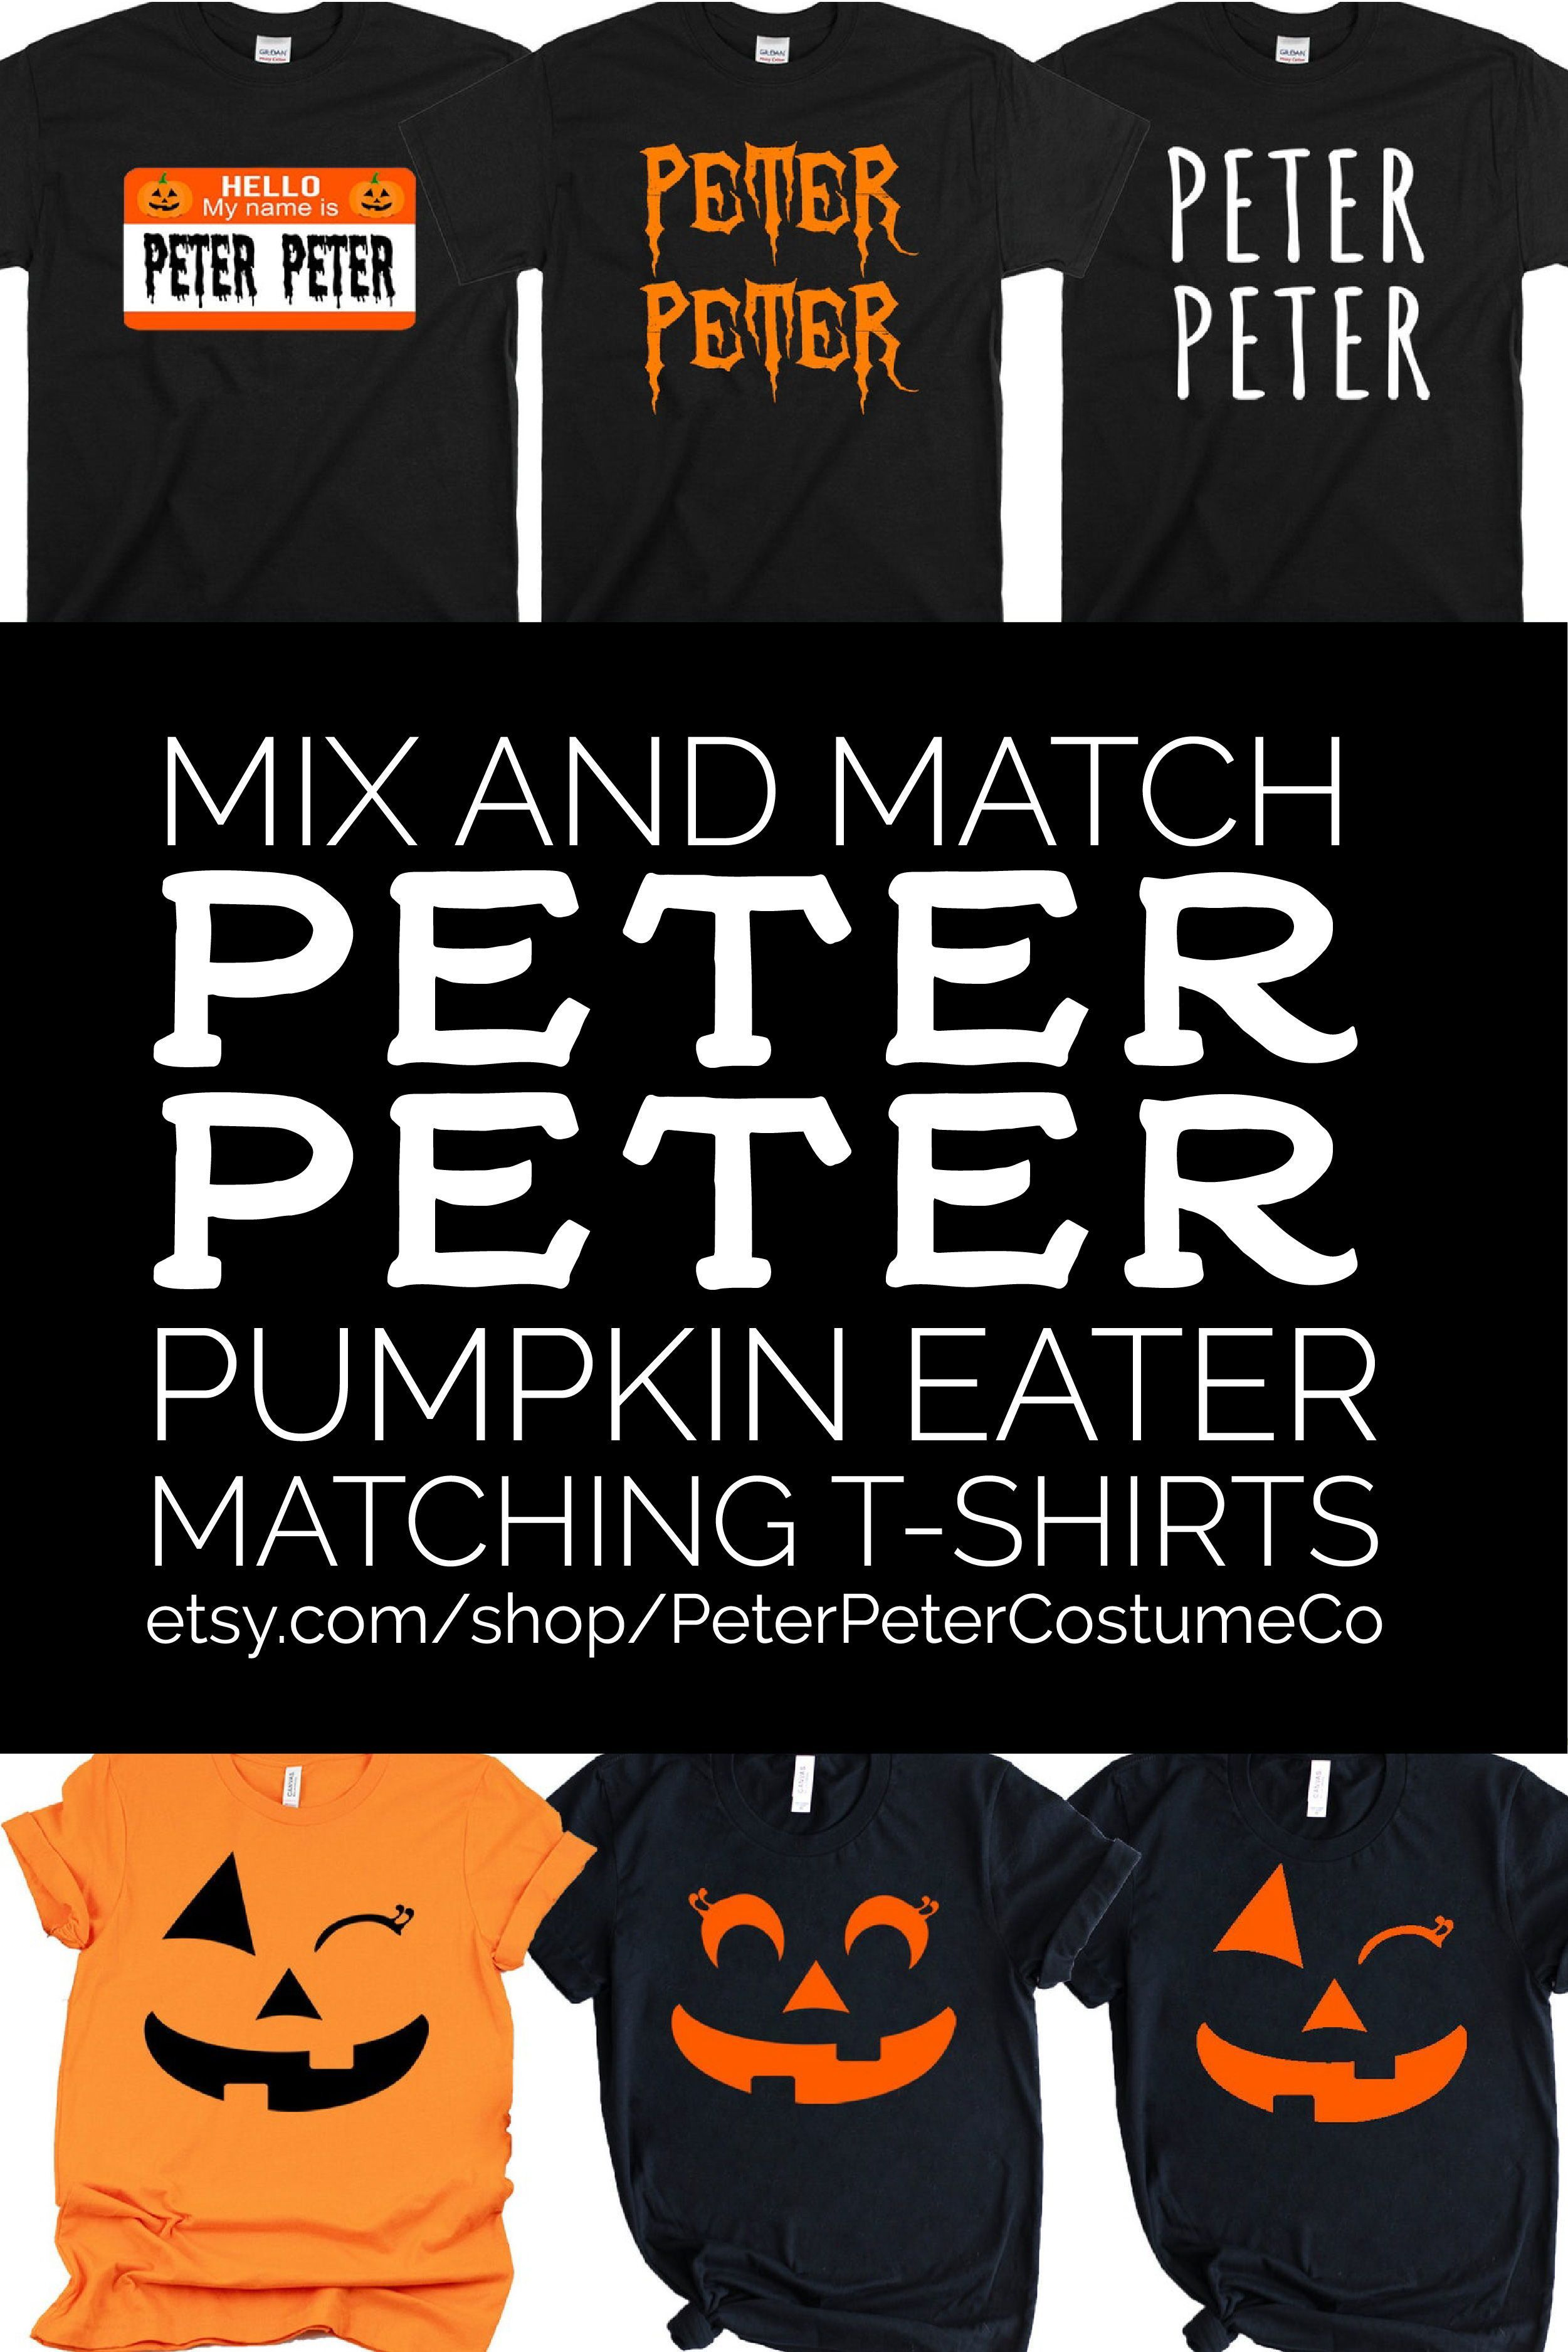 Funny Peter Pumpkin Eater T-Shirt Matching Shirts for Couples